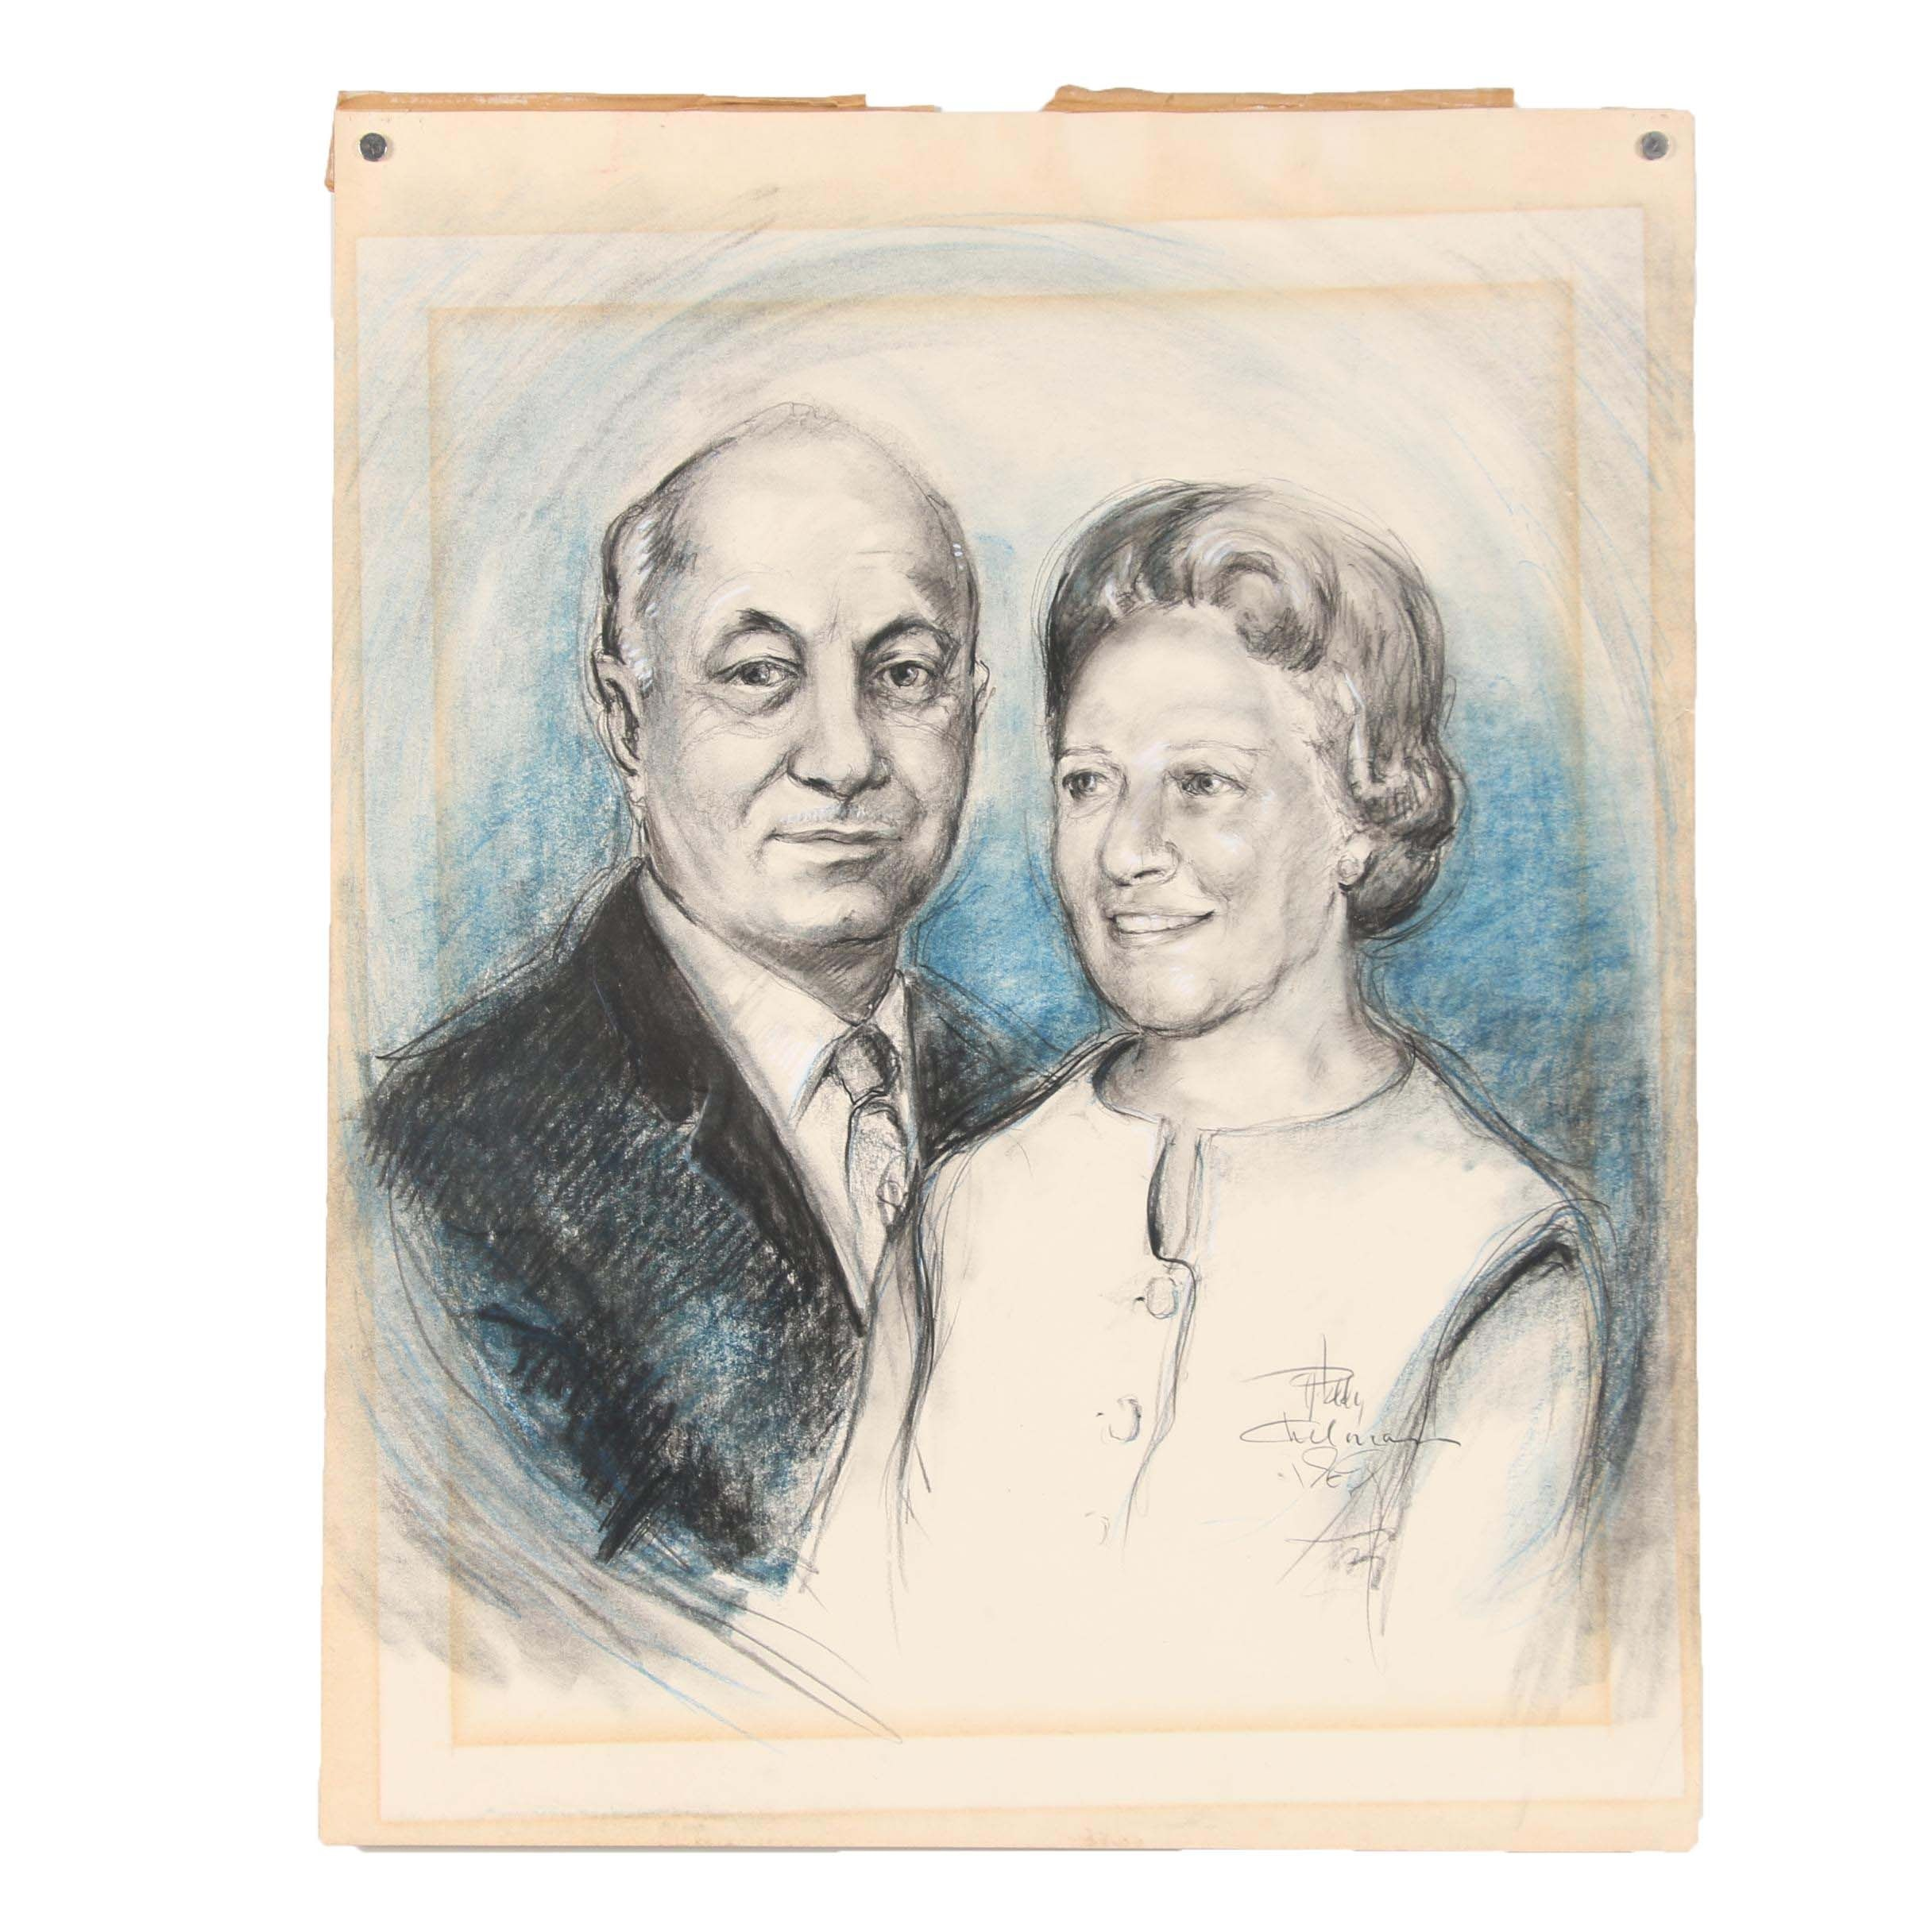 1969 Charcoal and Pastel Portrait Illustration